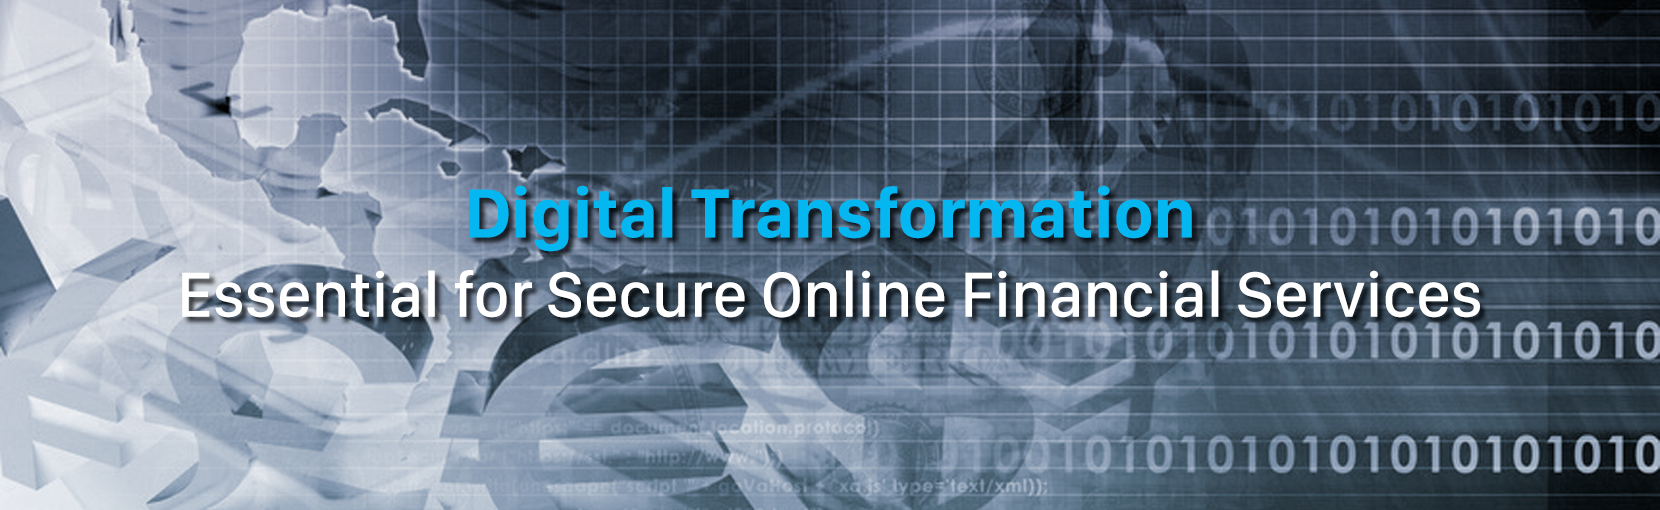 Digital-Transformation-Essential-for-Secure-Online-Financial-Services.png